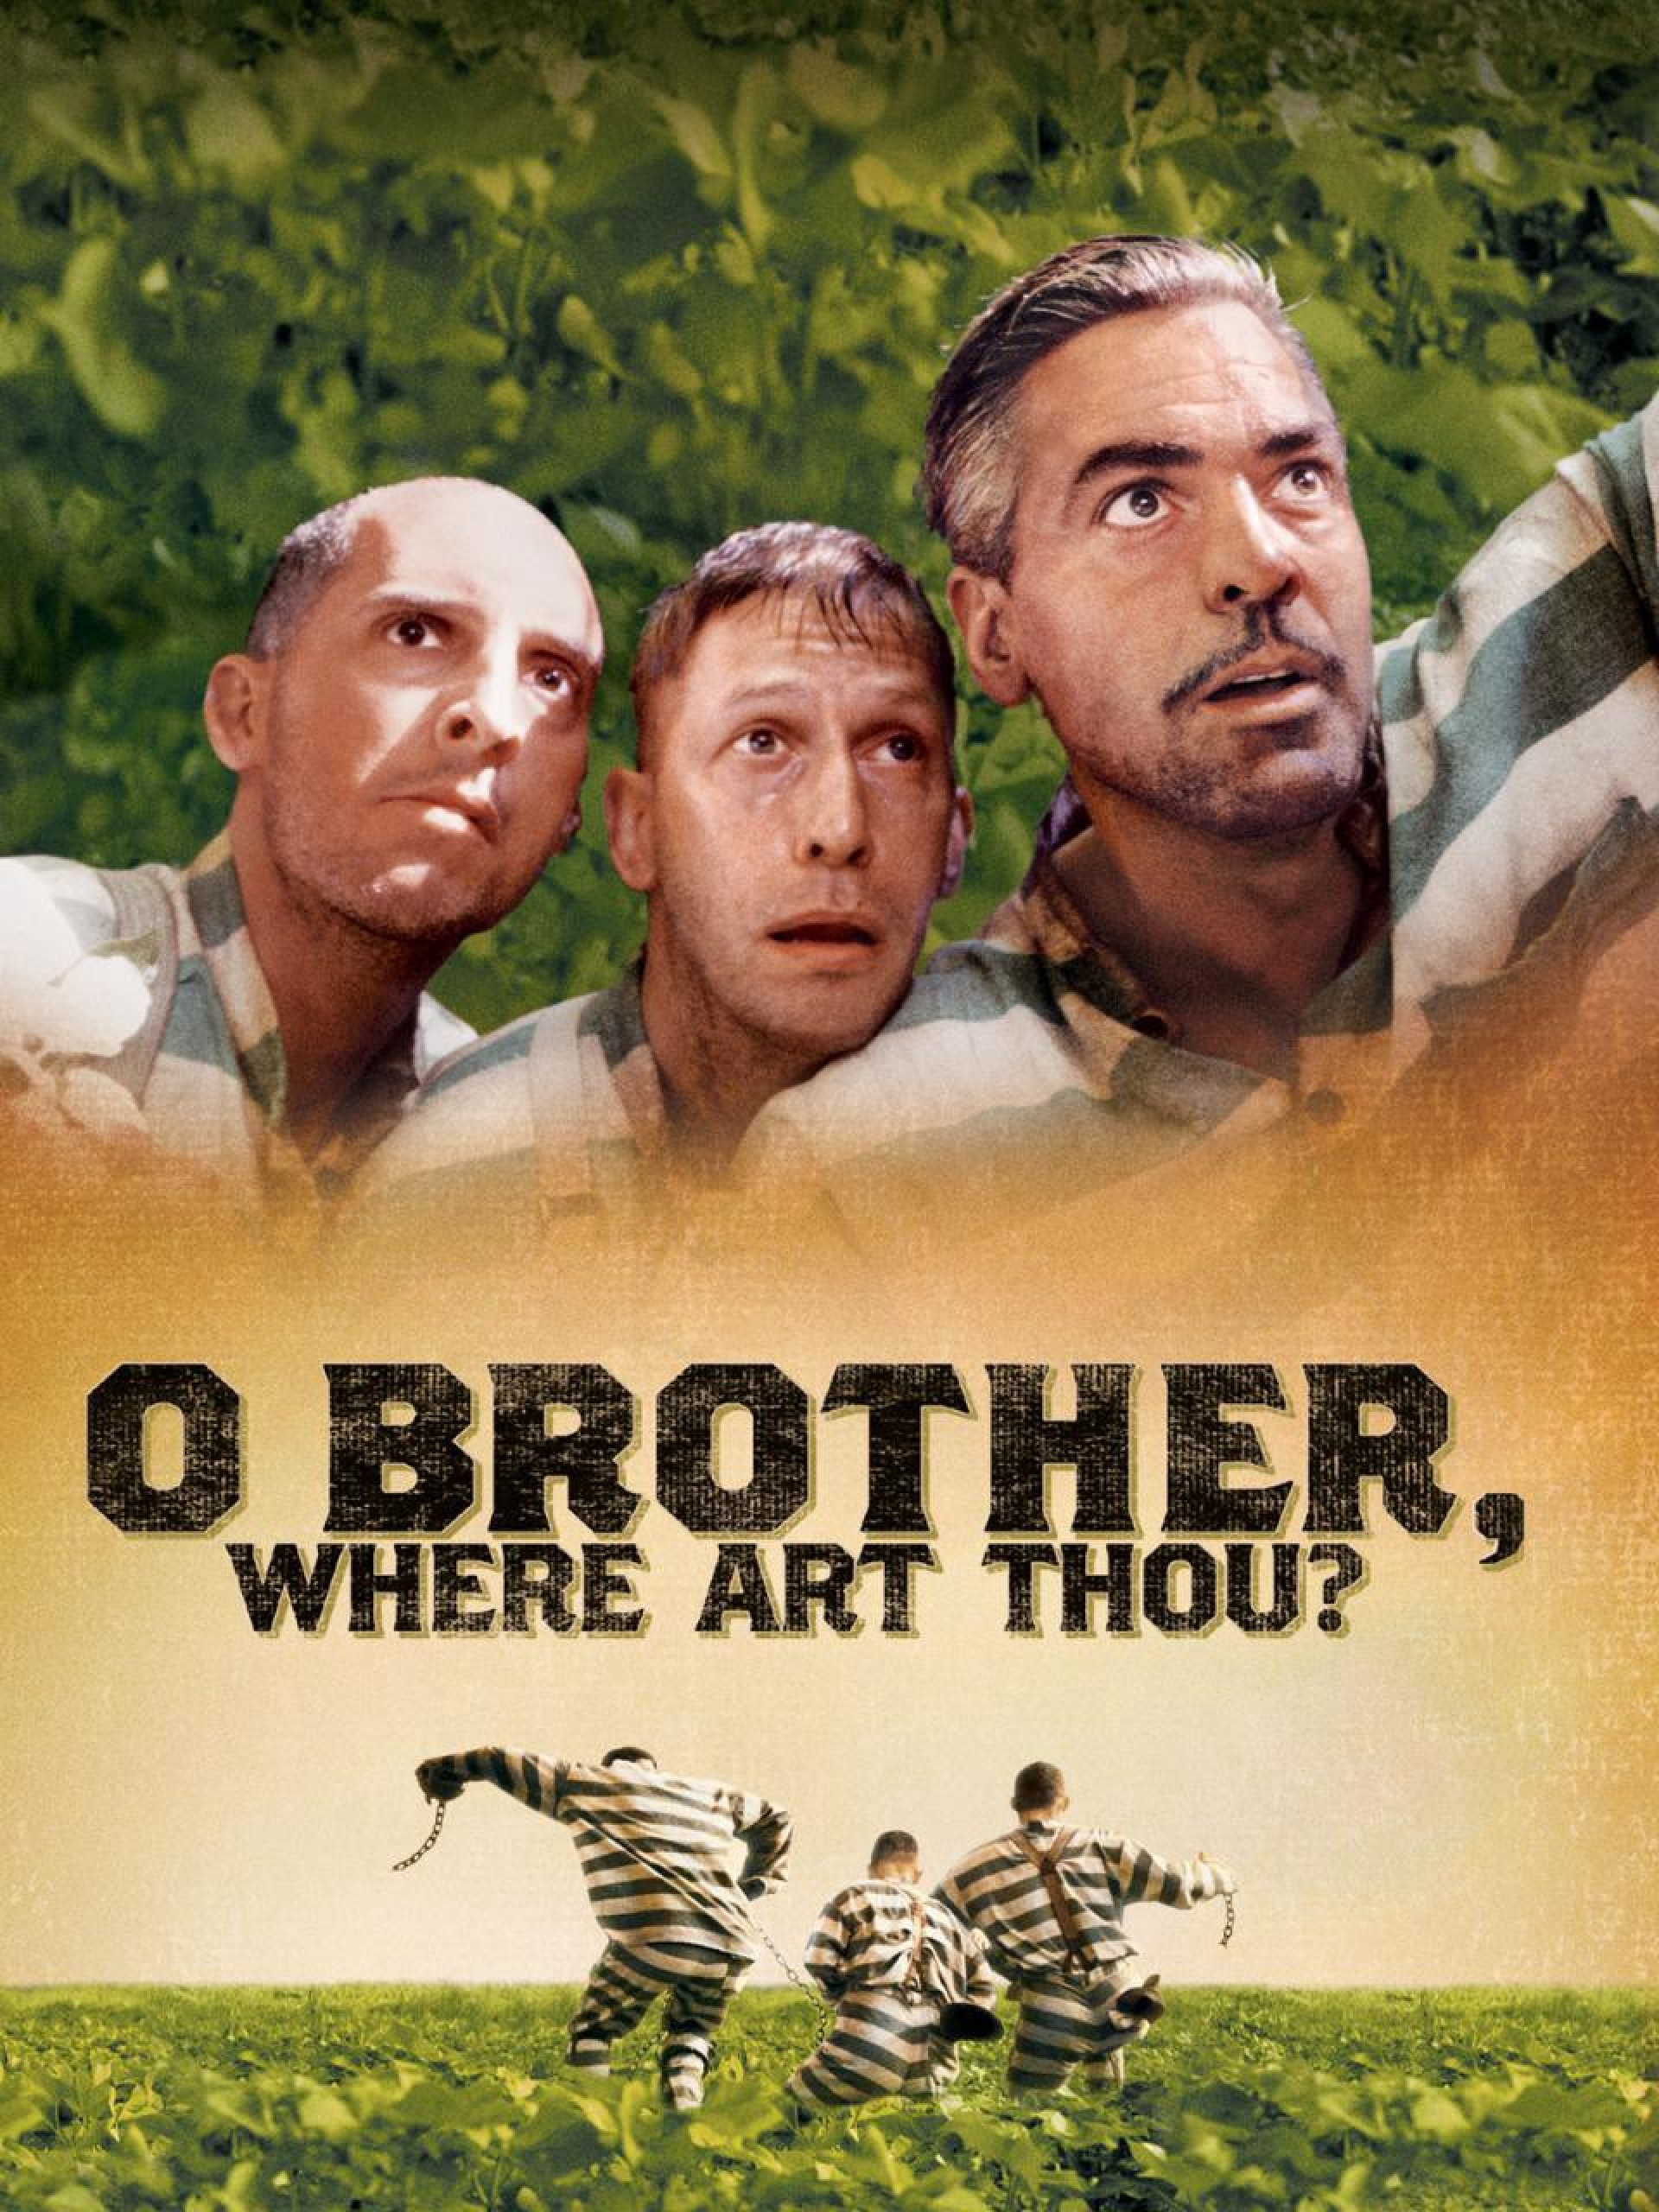 002 O Brother Where Art Thou Essay 1br06napar7lp Gs6wzm Ug Striking And The Odyssey Comparison Vs Compared To 1920